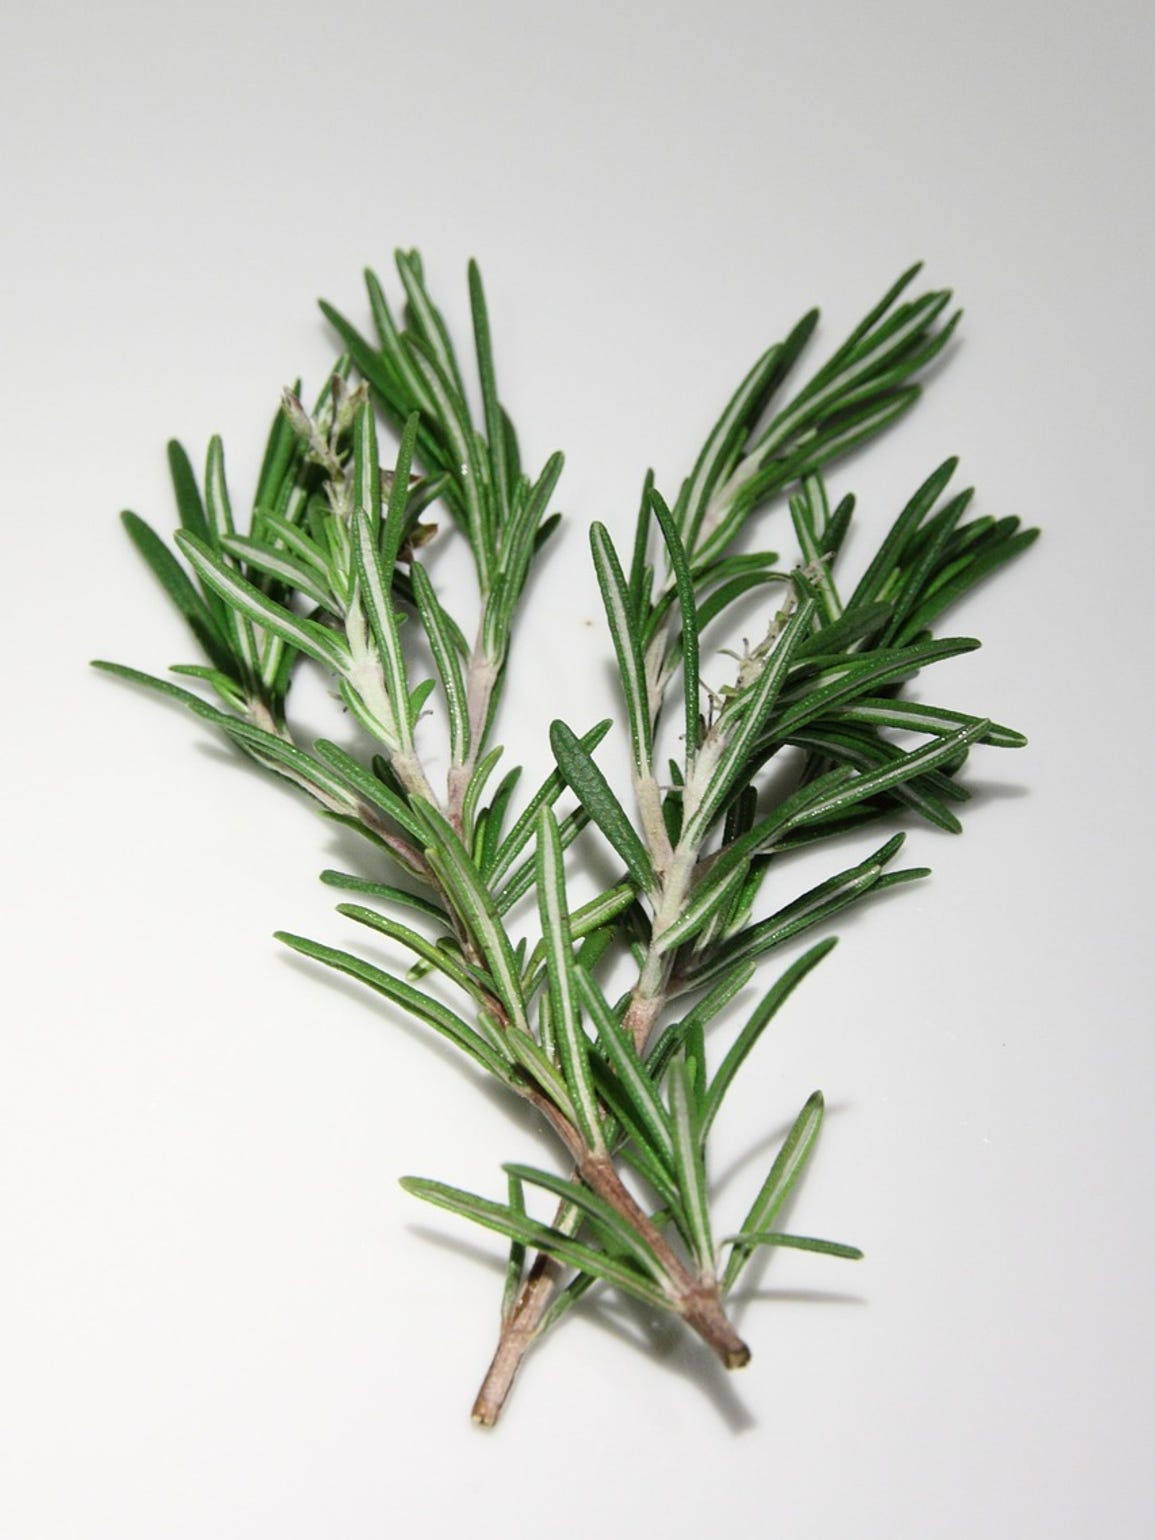 Jenny recommends using rosemary for aromatherapy.